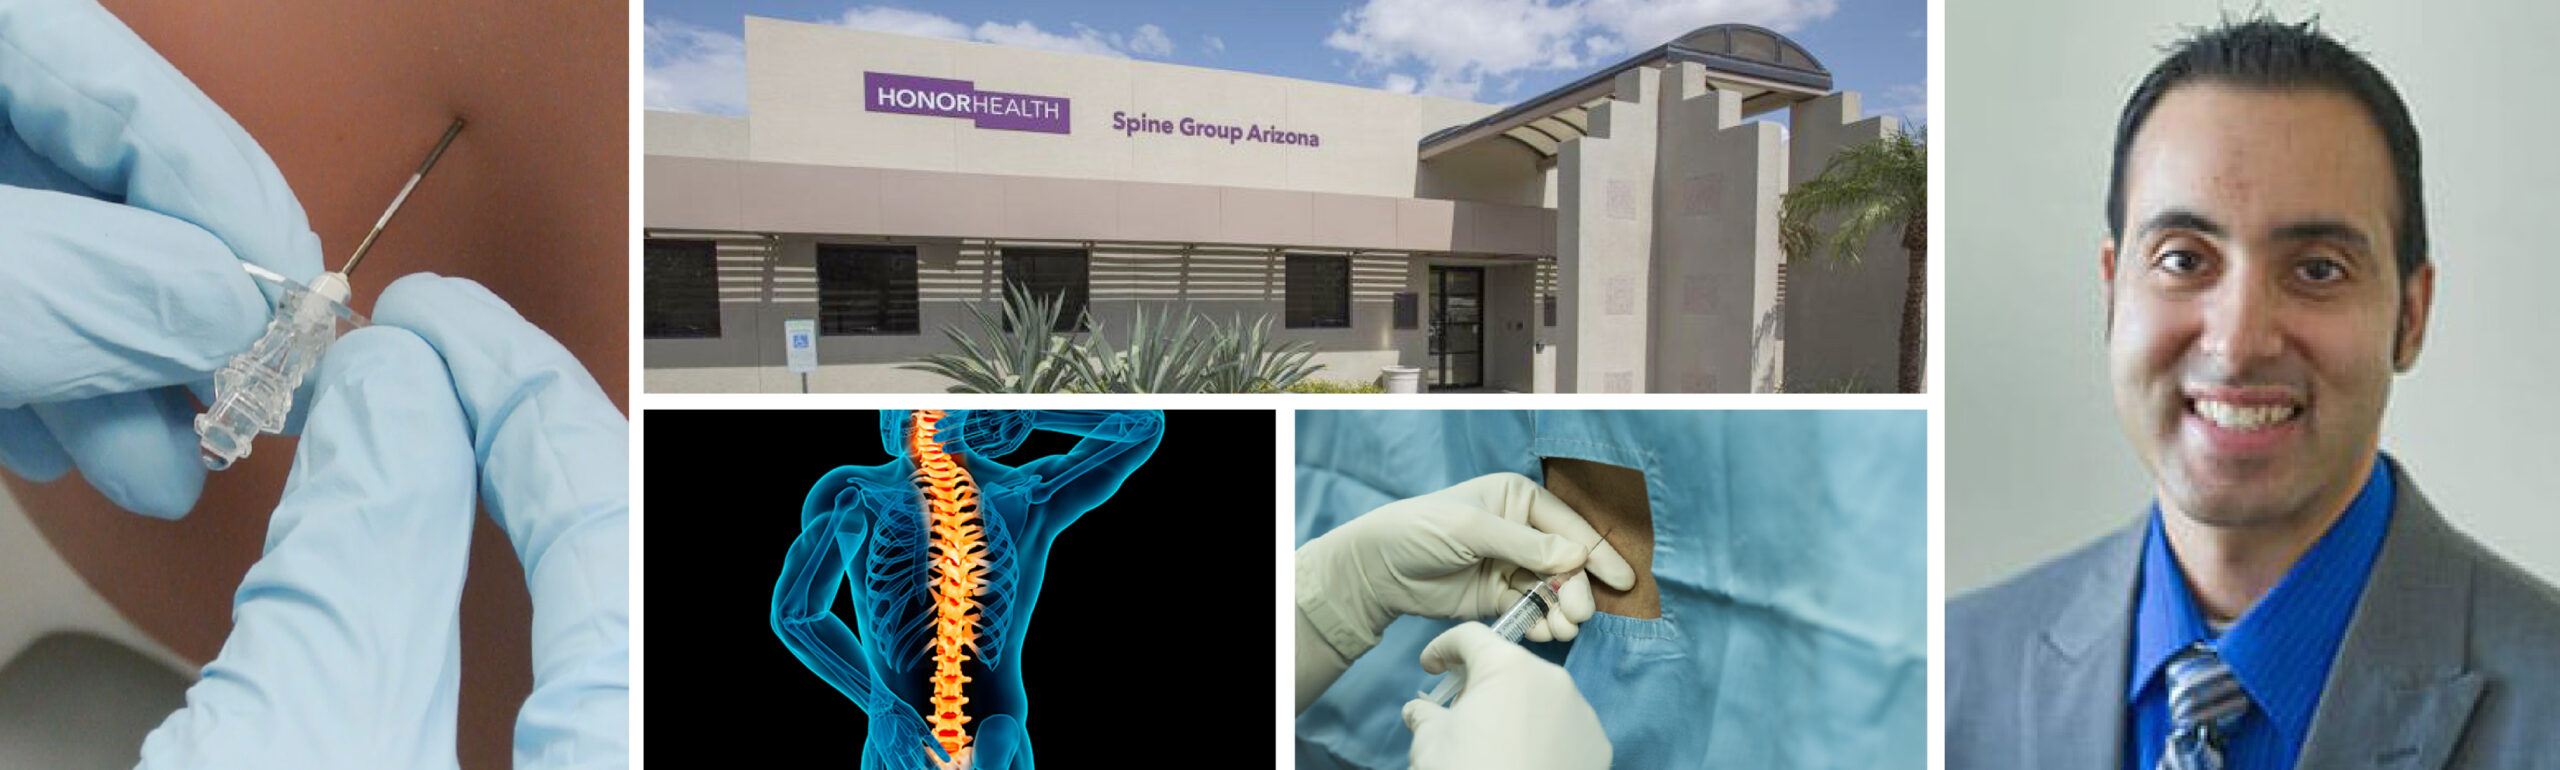 Spine Group Arizona is one of the best!